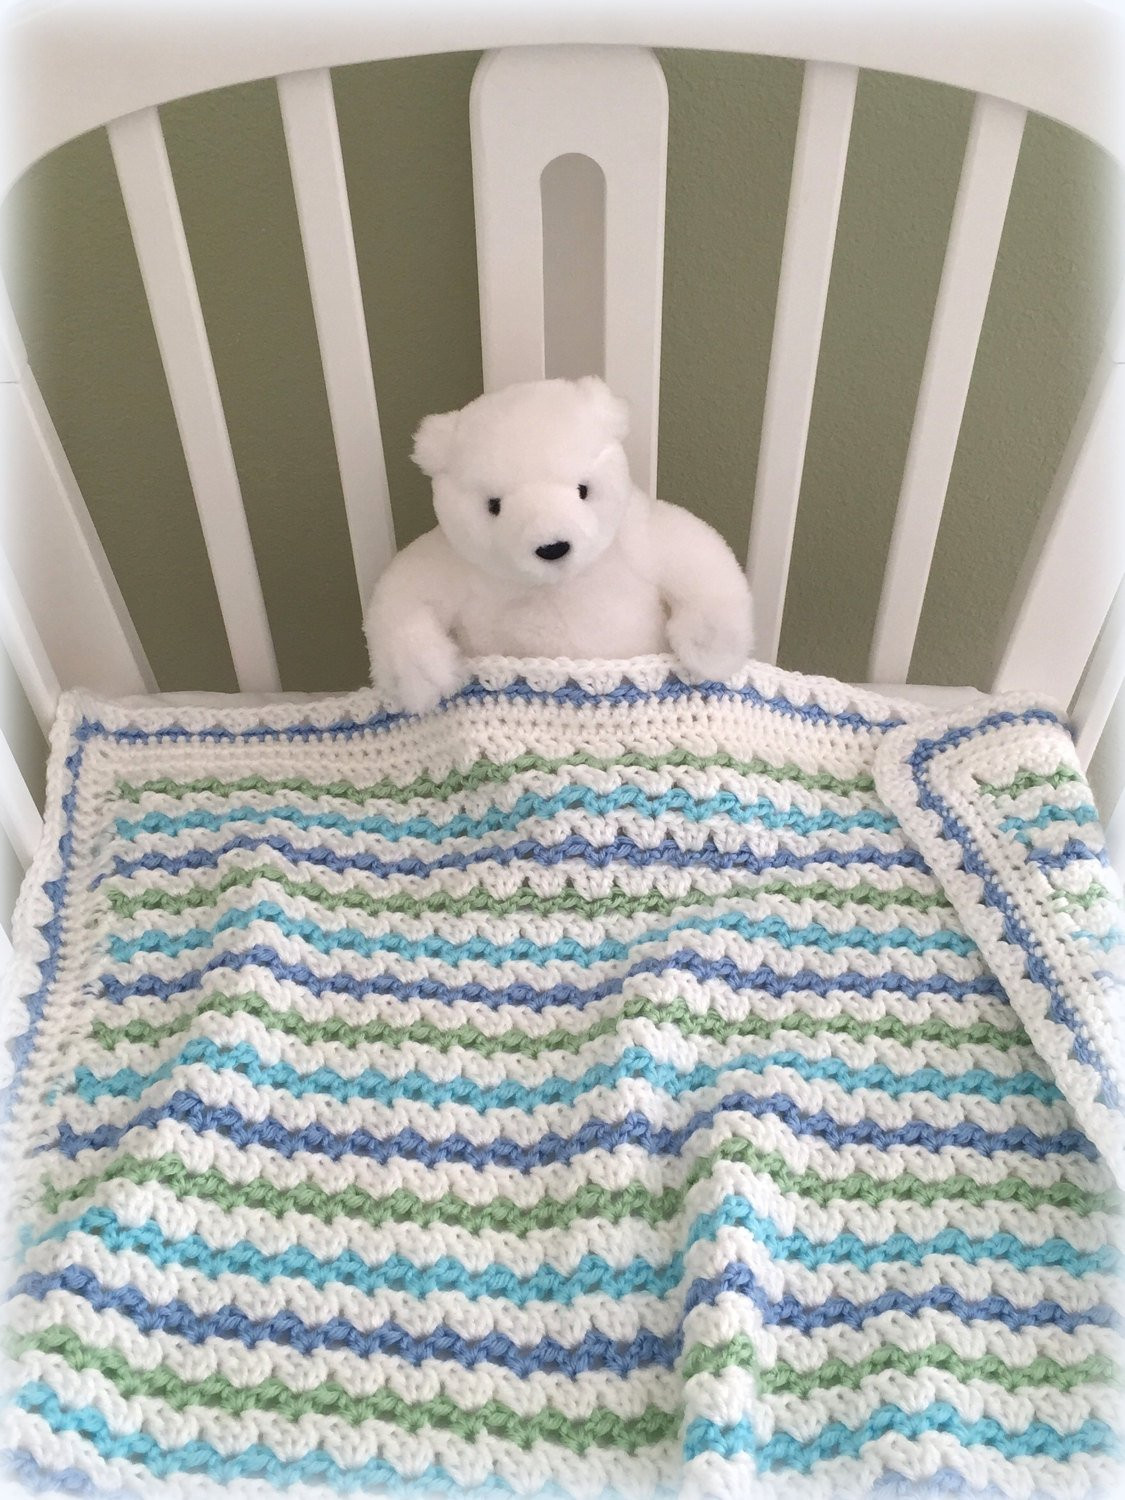 Best Of Crochet Baby Blanket Pattern Baby Blanket Pattern Easy Easiest Crochet Blanket Of New 50 Images Easiest Crochet Blanket